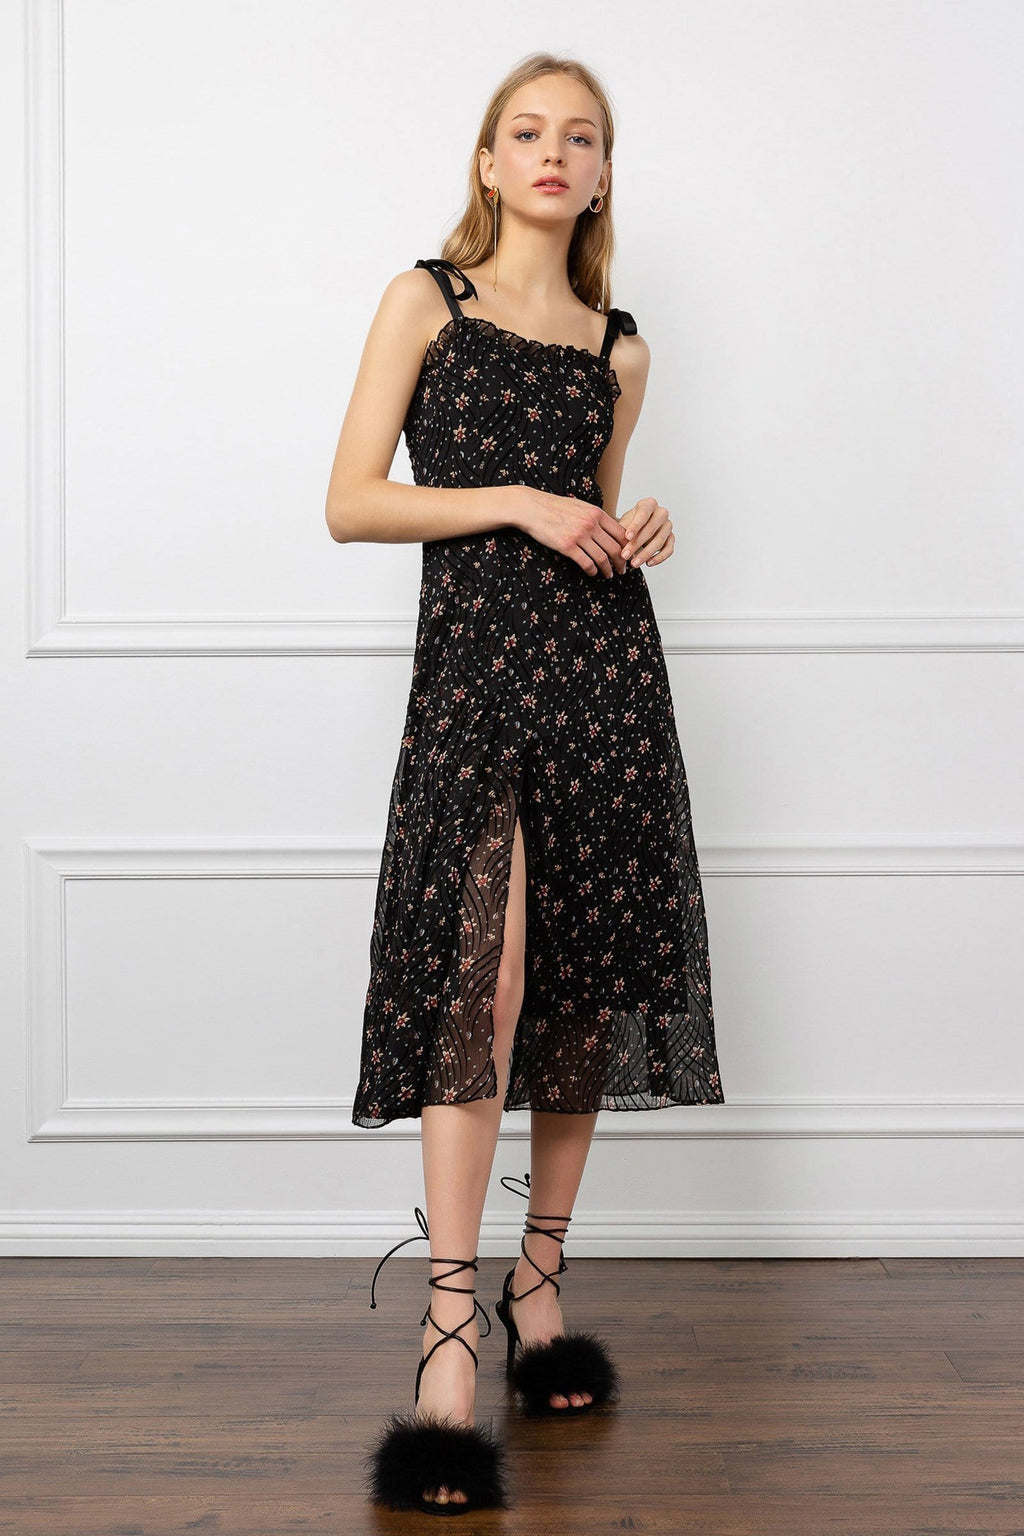 https://cdn.shopify.com/s/files/1/0015/5638/1732/files/Black_Ariba_Dress-VD.mp4?49448